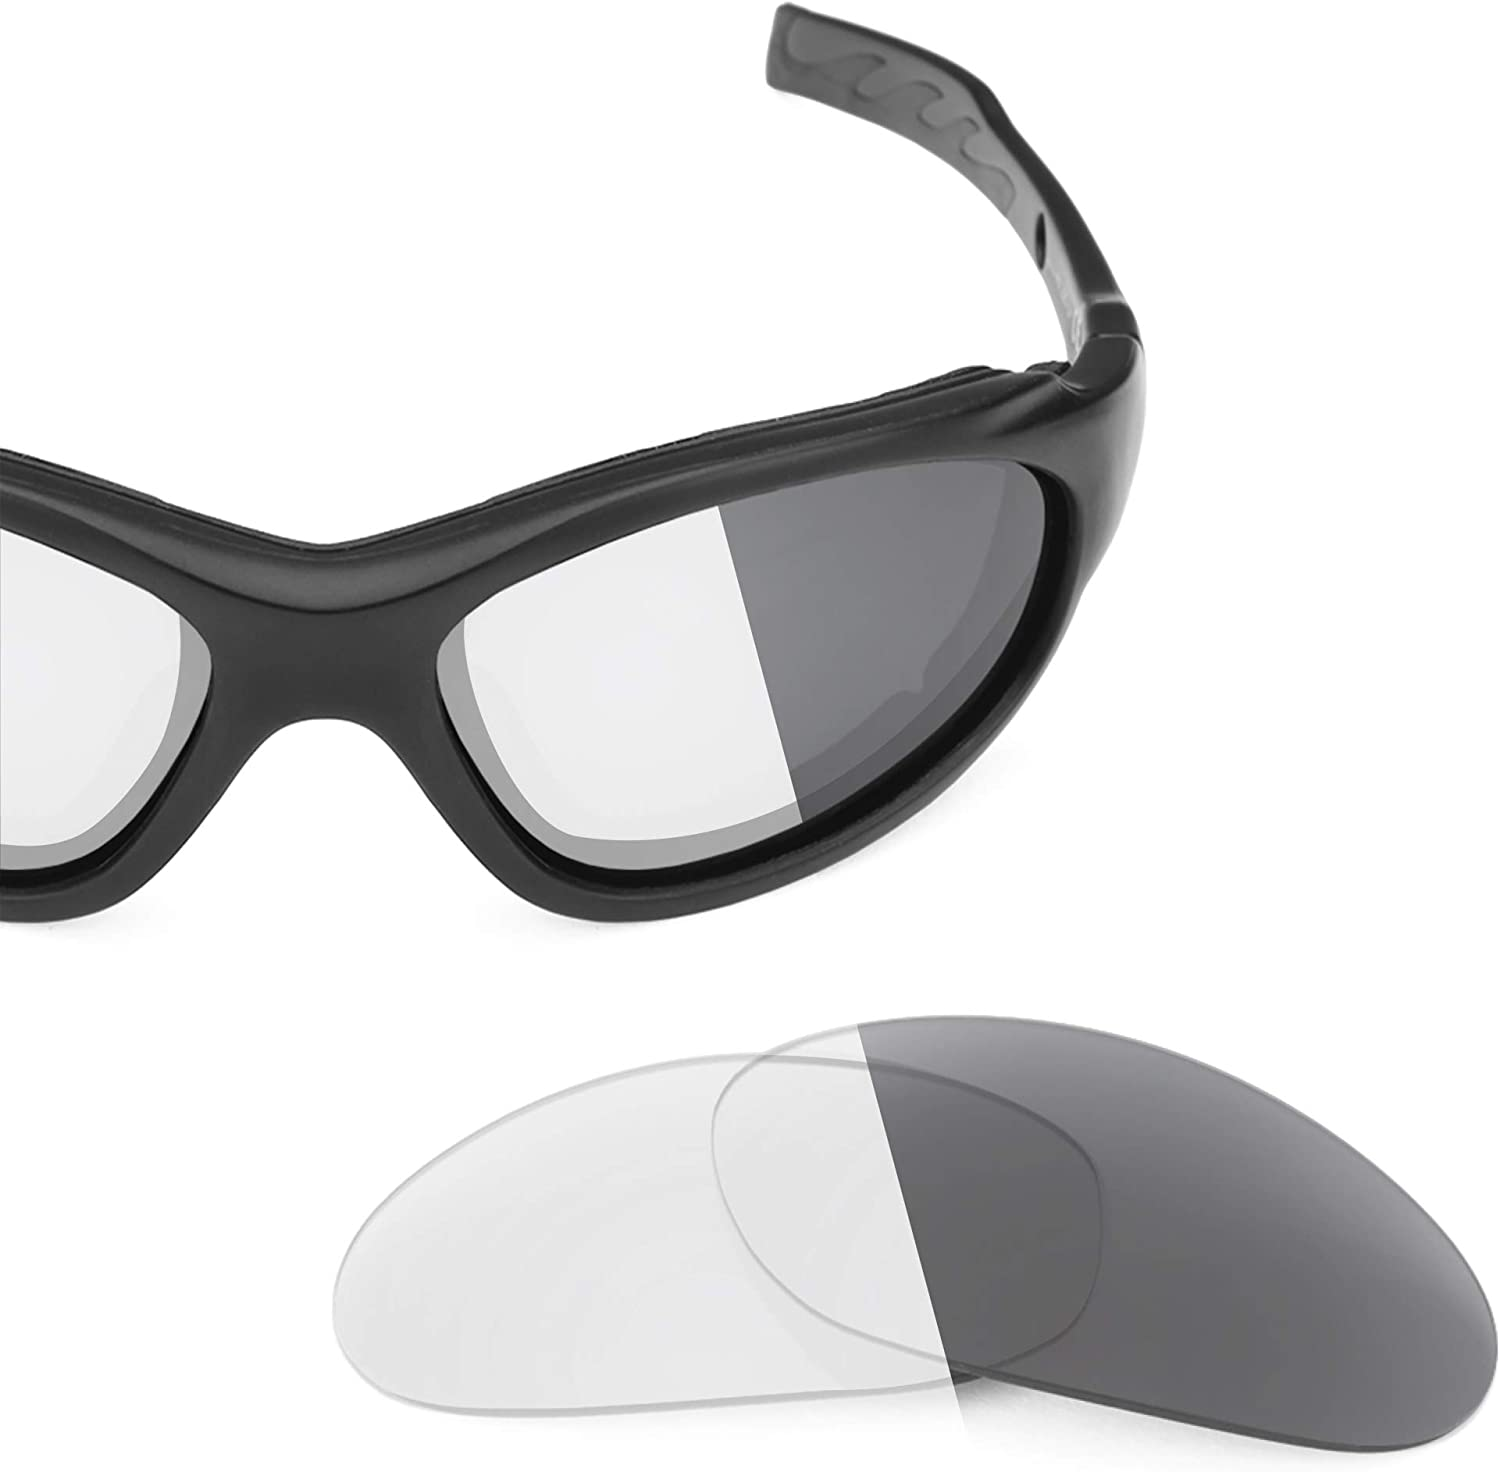 Revant Replacement Lenses for Wiley X XL-1 Advanced Compatible with Wiley X XL-1 Advanced Sunglasses